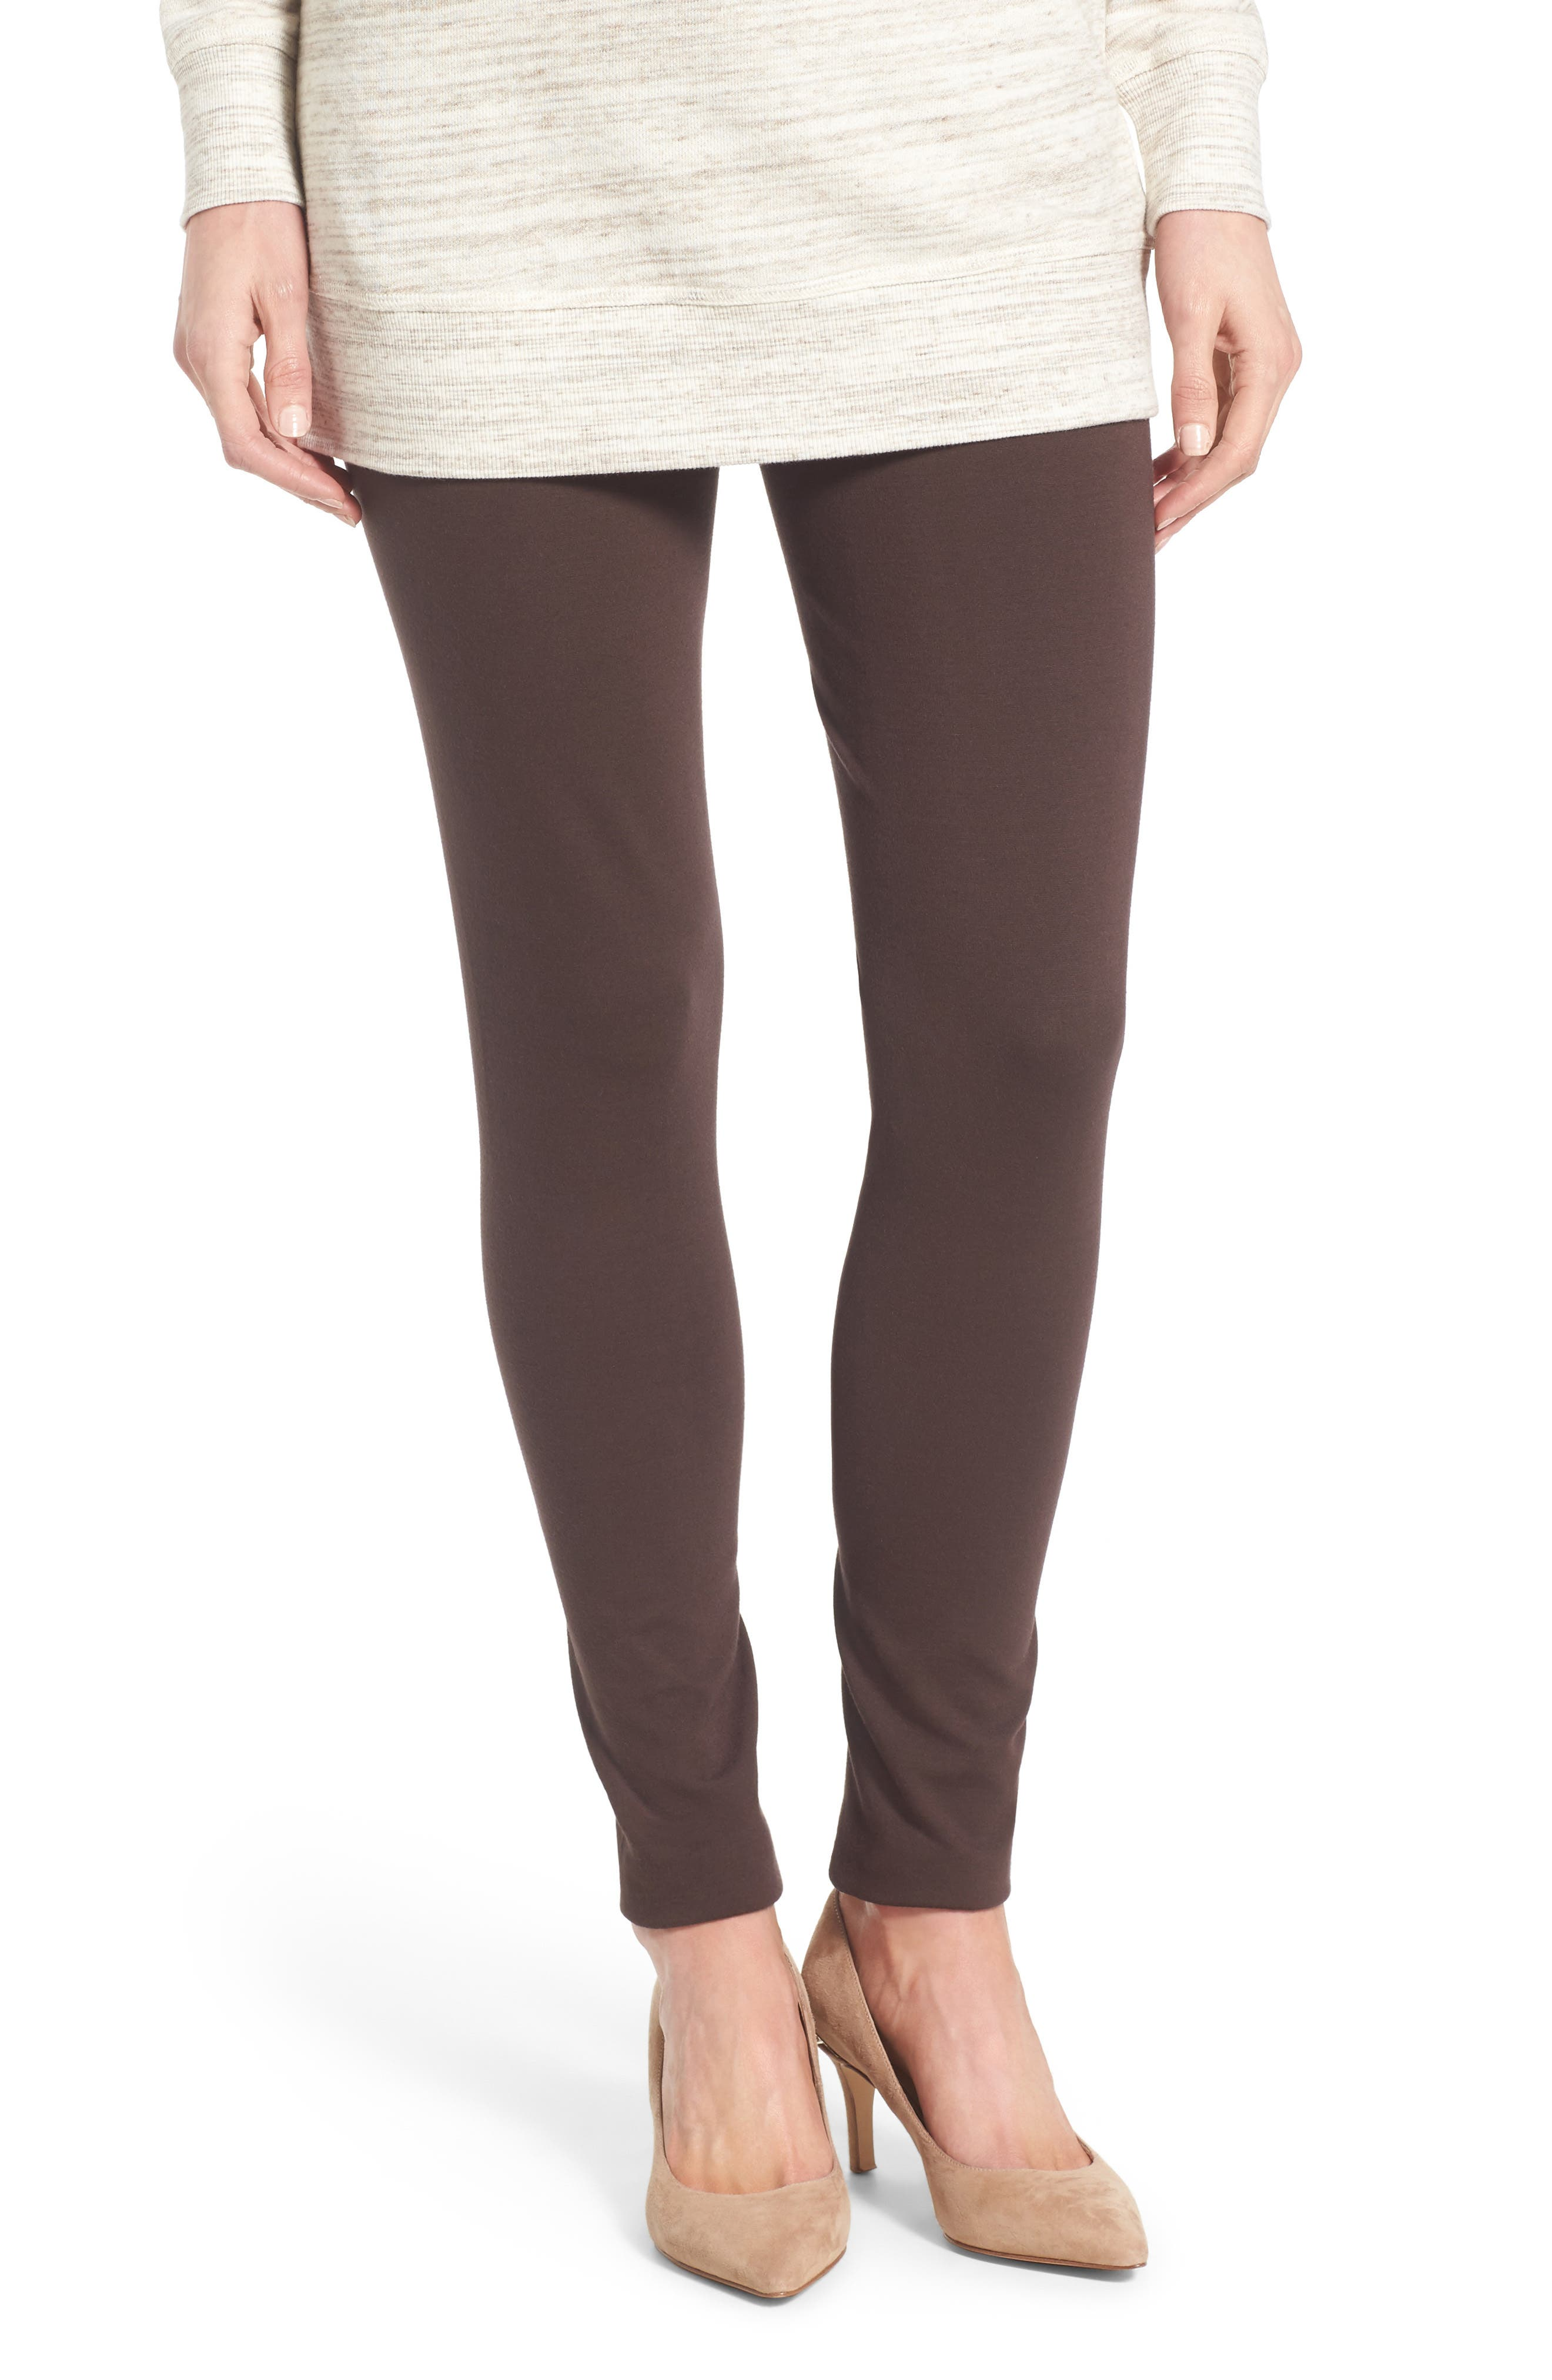 Two by Vince Camuto Seamed Back Leggings,                             Main thumbnail 1, color,                             ESPRESSO